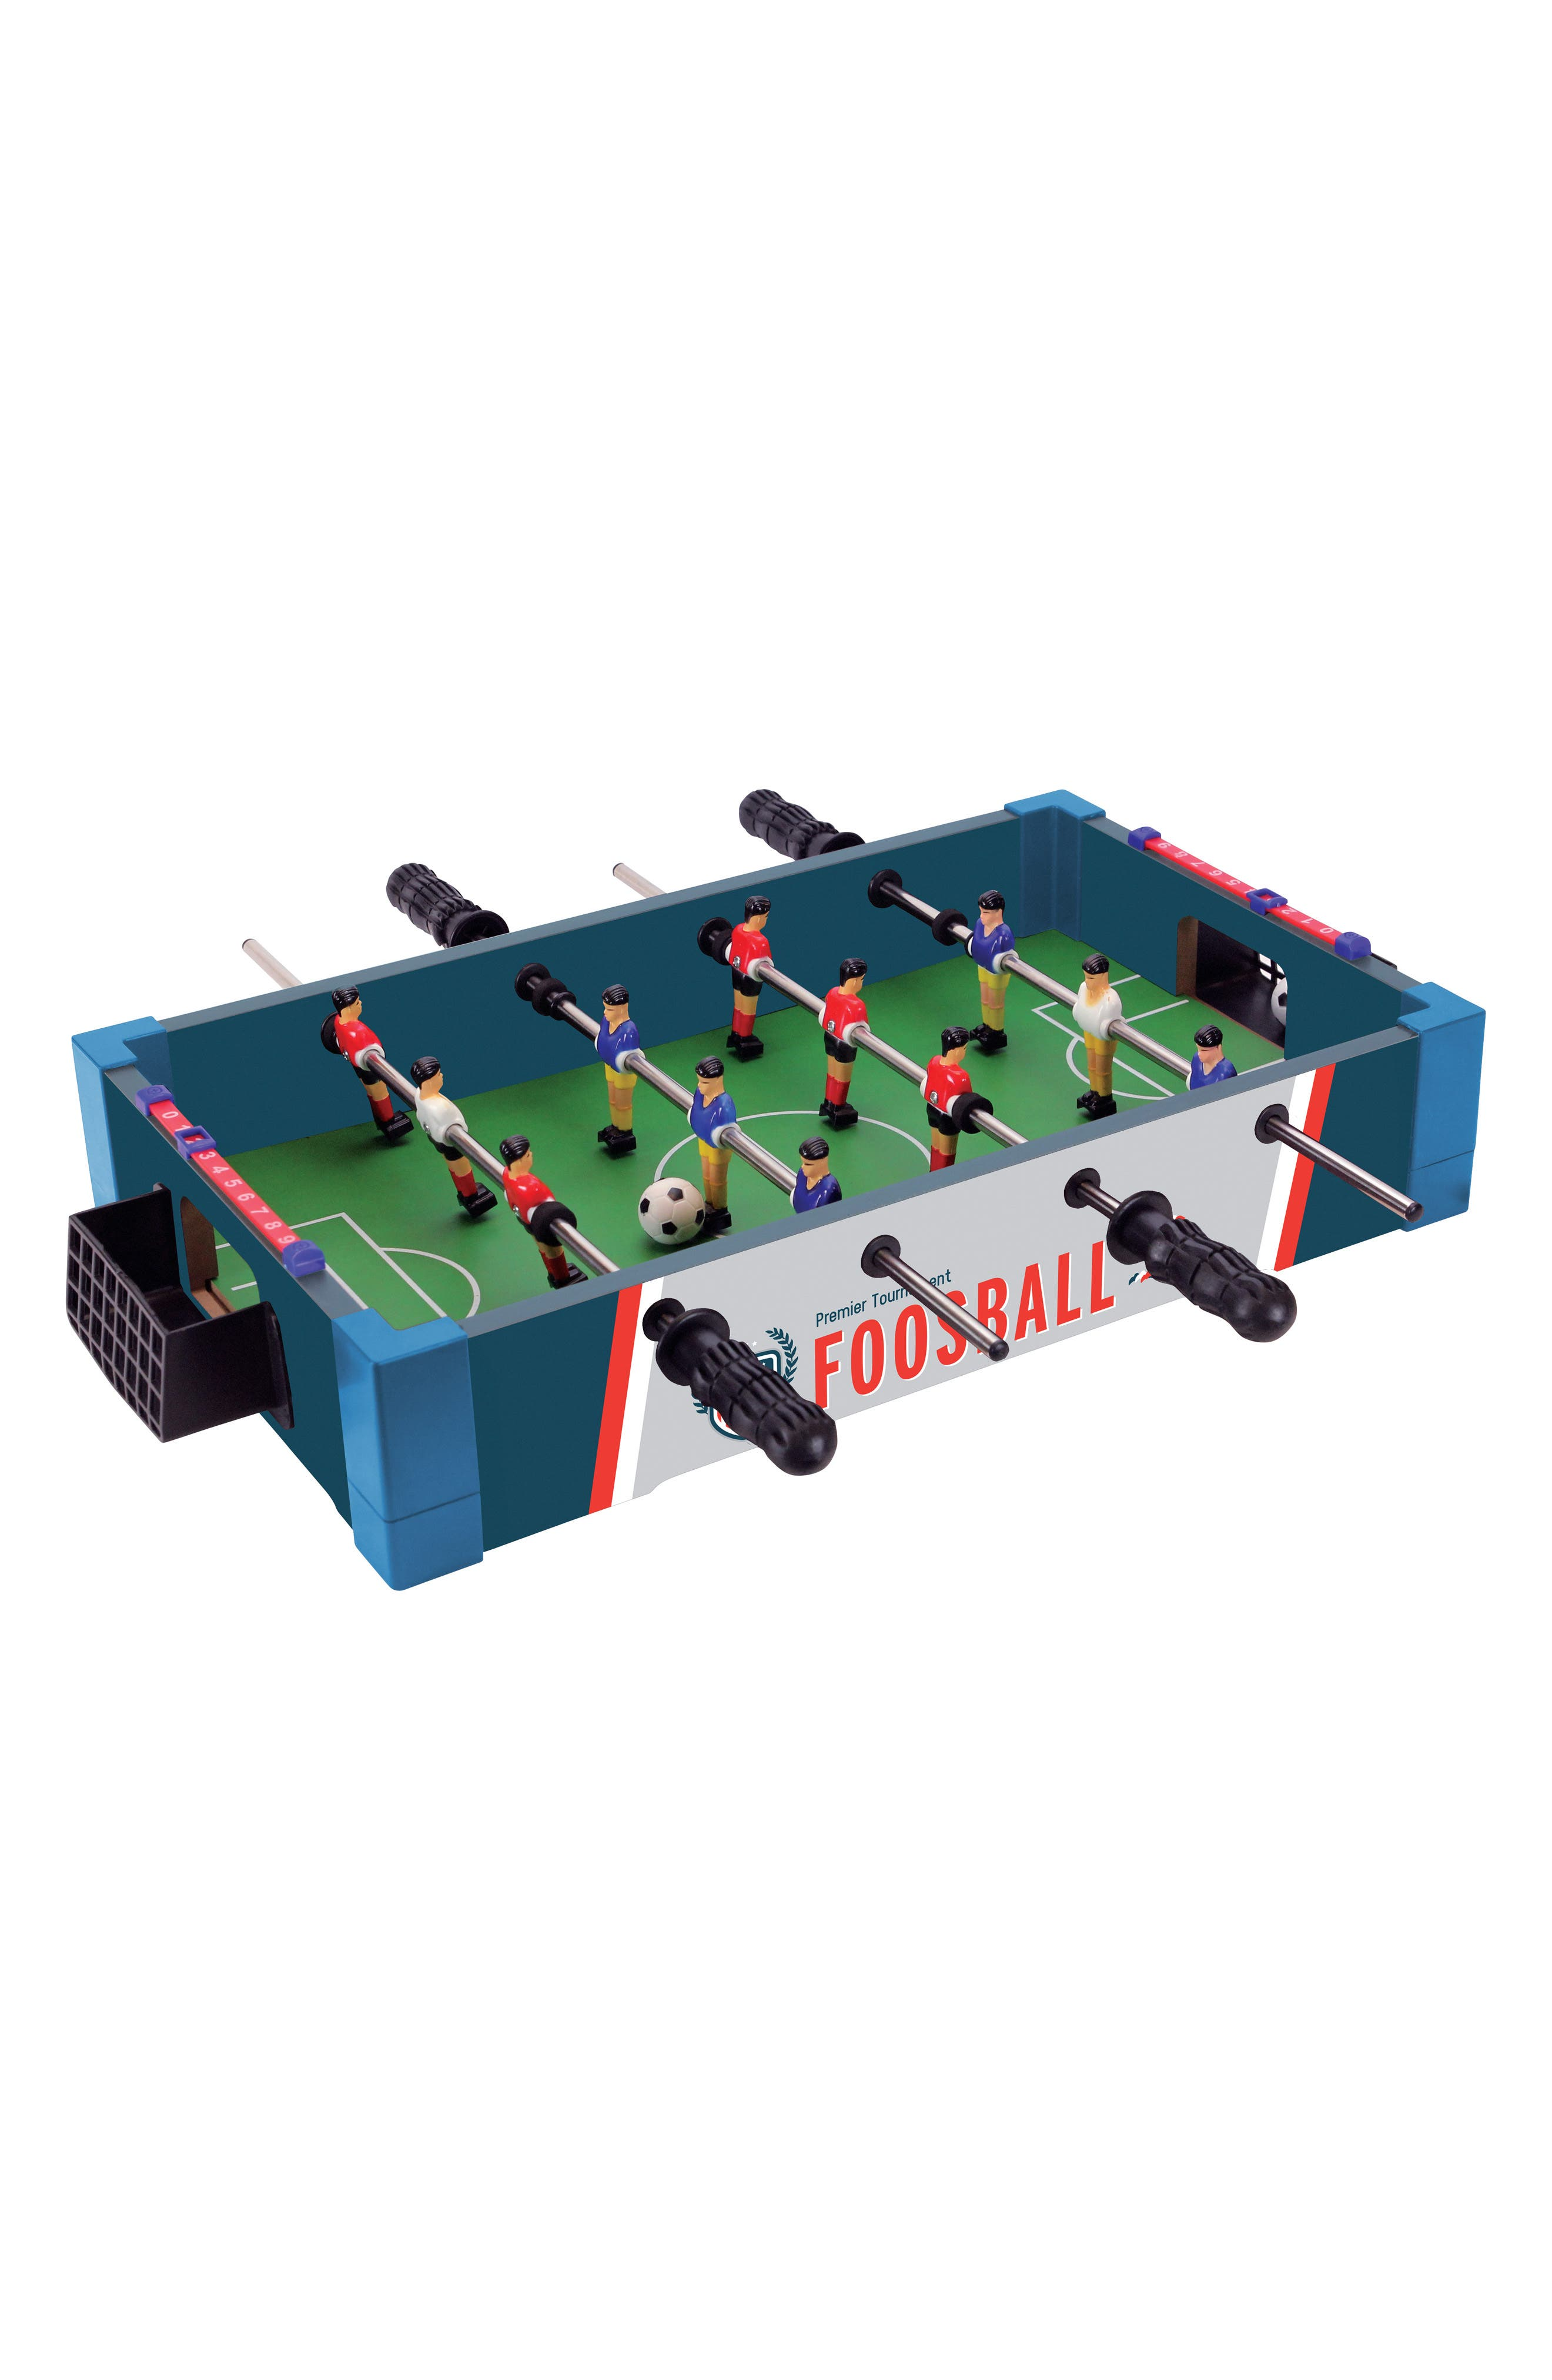 Boys Westminster Toys Championship Series Foosball Game